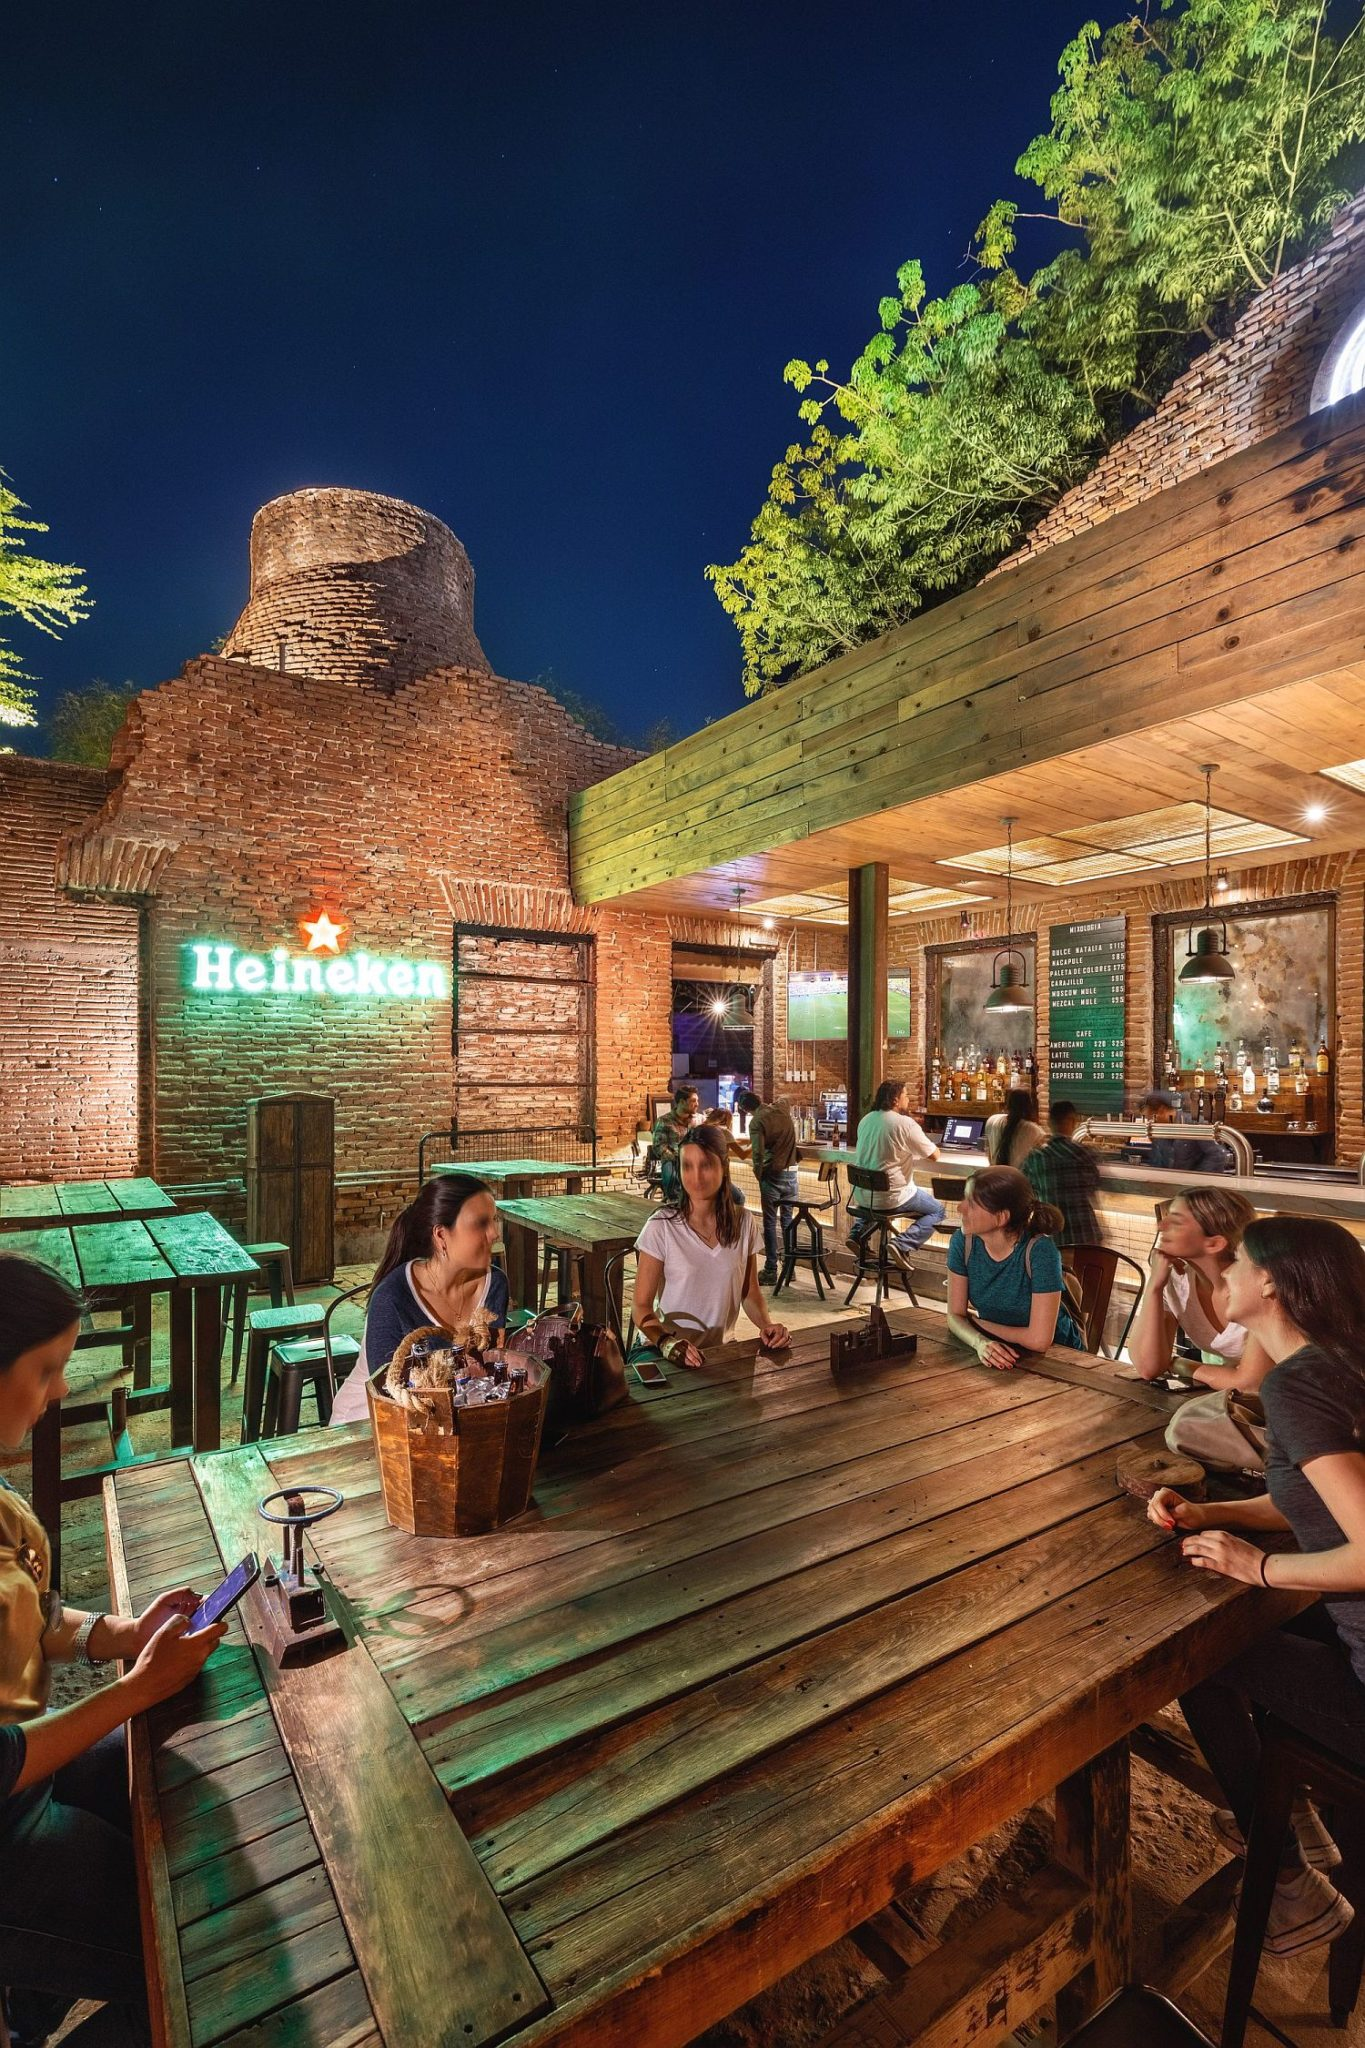 Old textile factory in Mexico turned into a fabulous and open bar